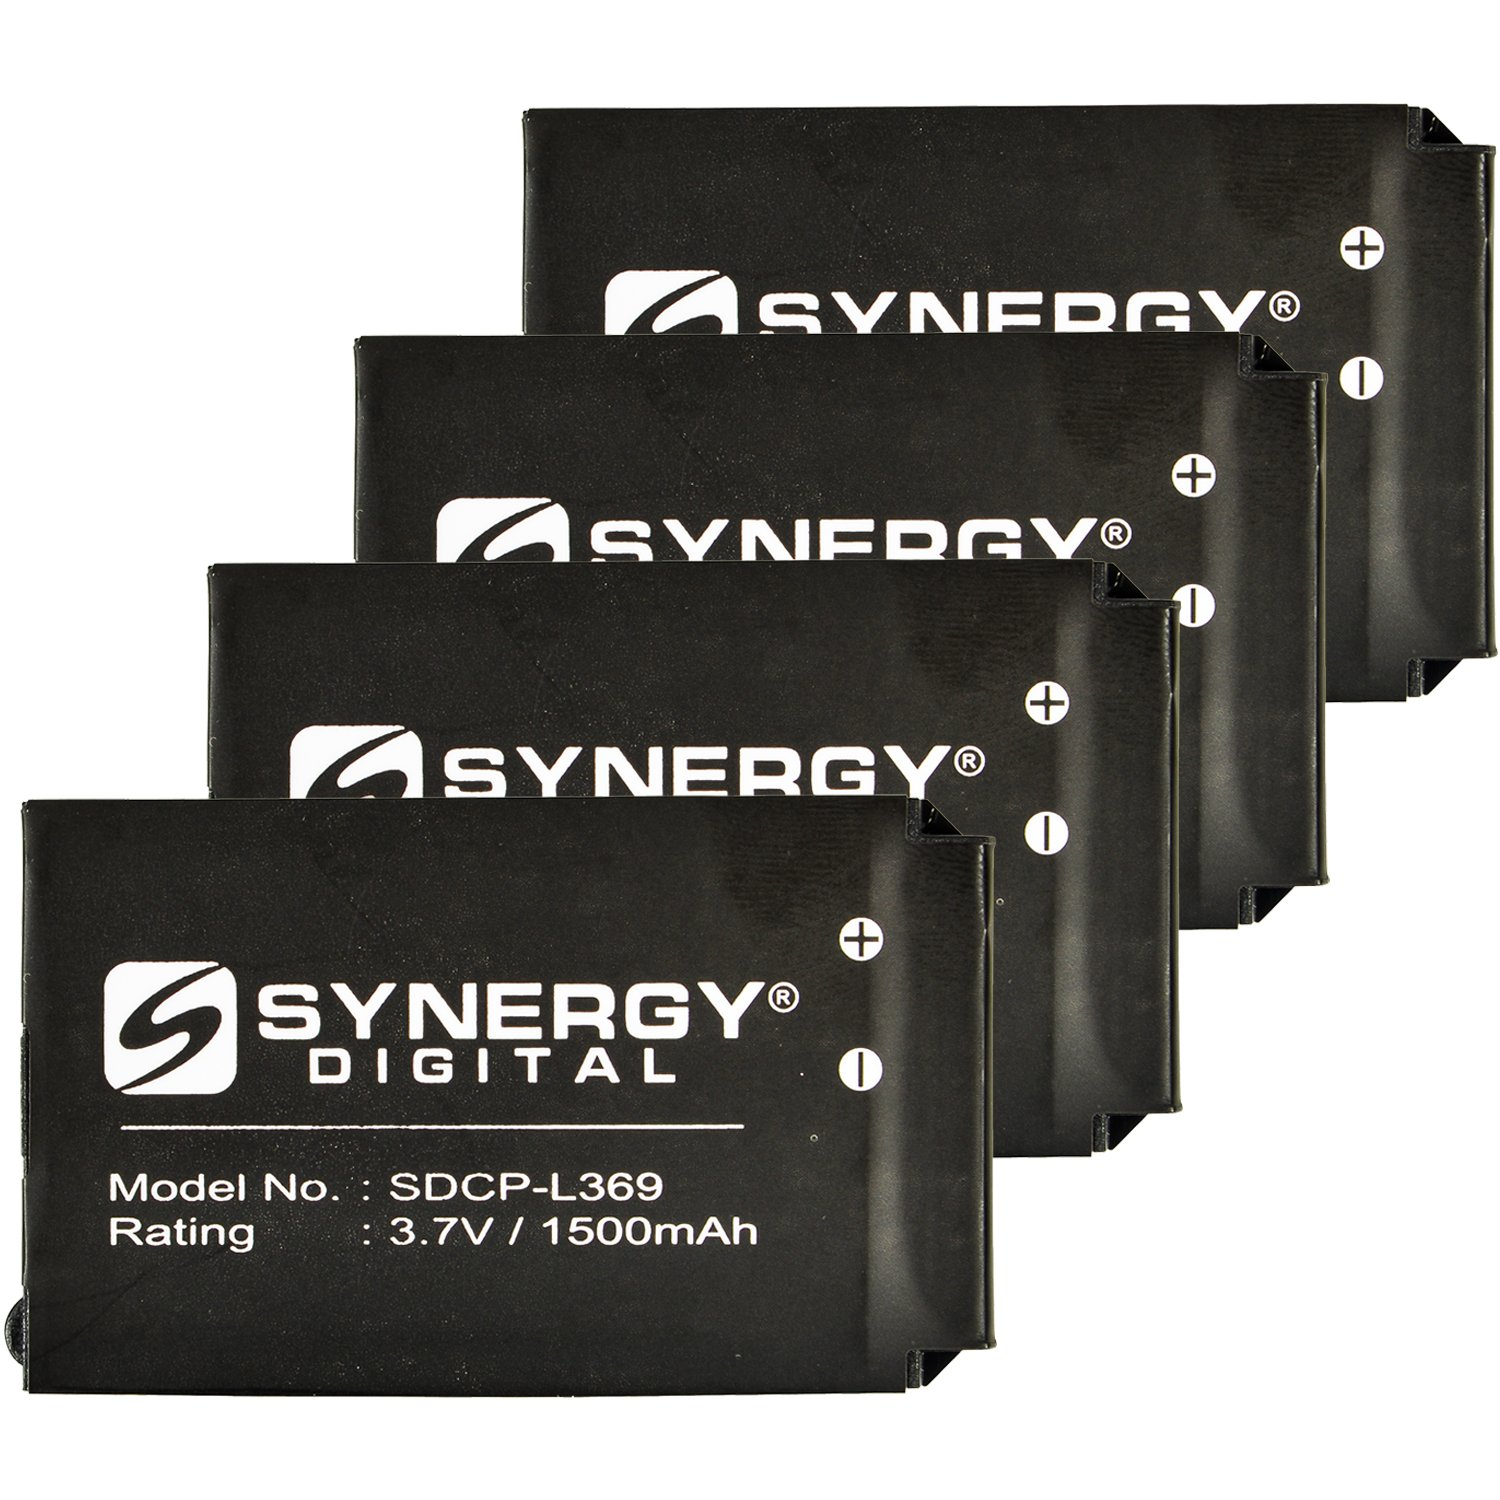 Cisco 74-5469-01 Cordless Phone Battery Combo-Pack Includes: 4 x SDCP-L369 Batteries by Synergy Digital